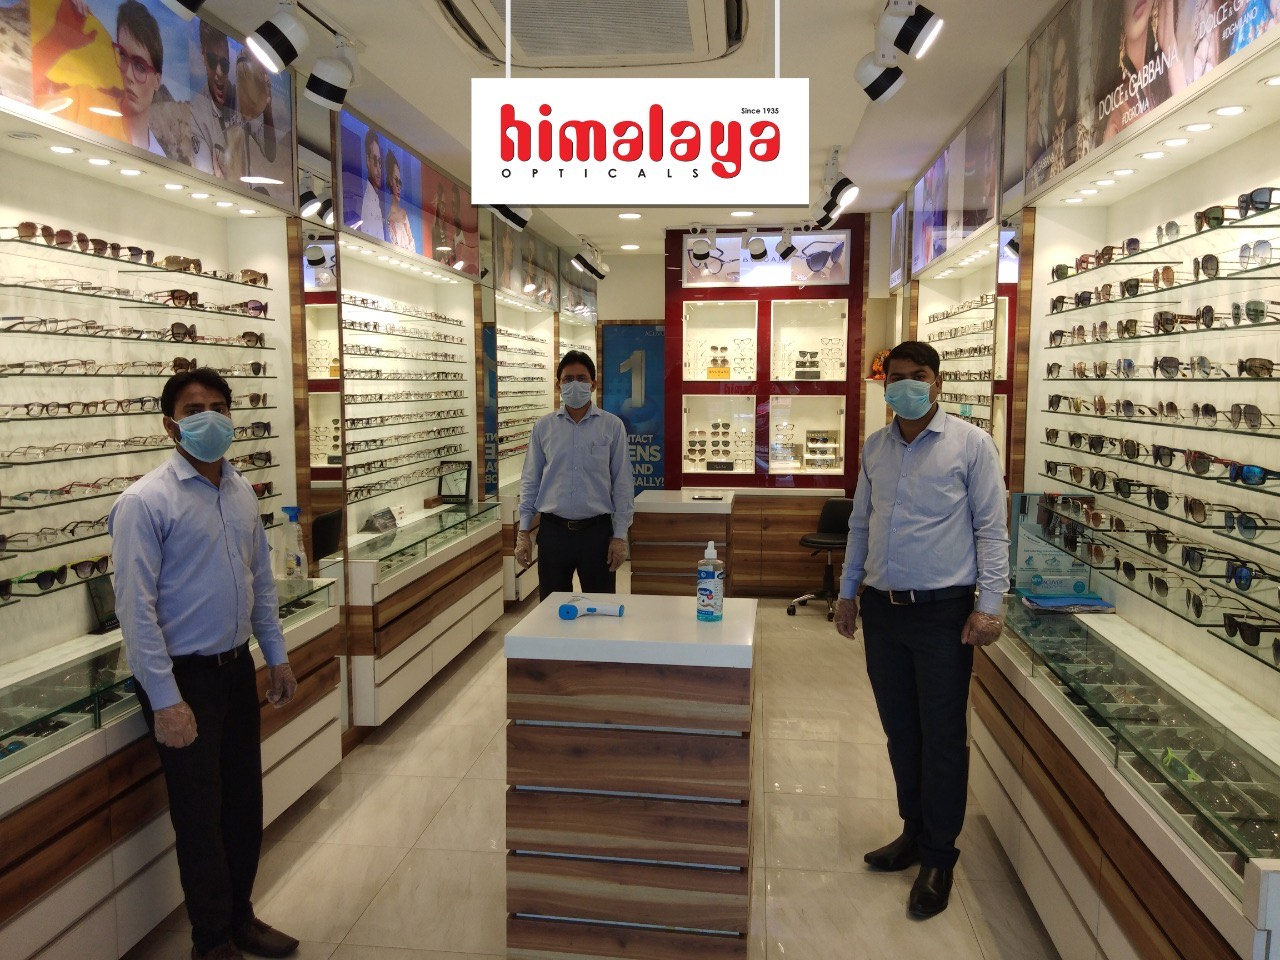 Luxottica India's partner retail store Himalaya Opticals reopens after lockdown